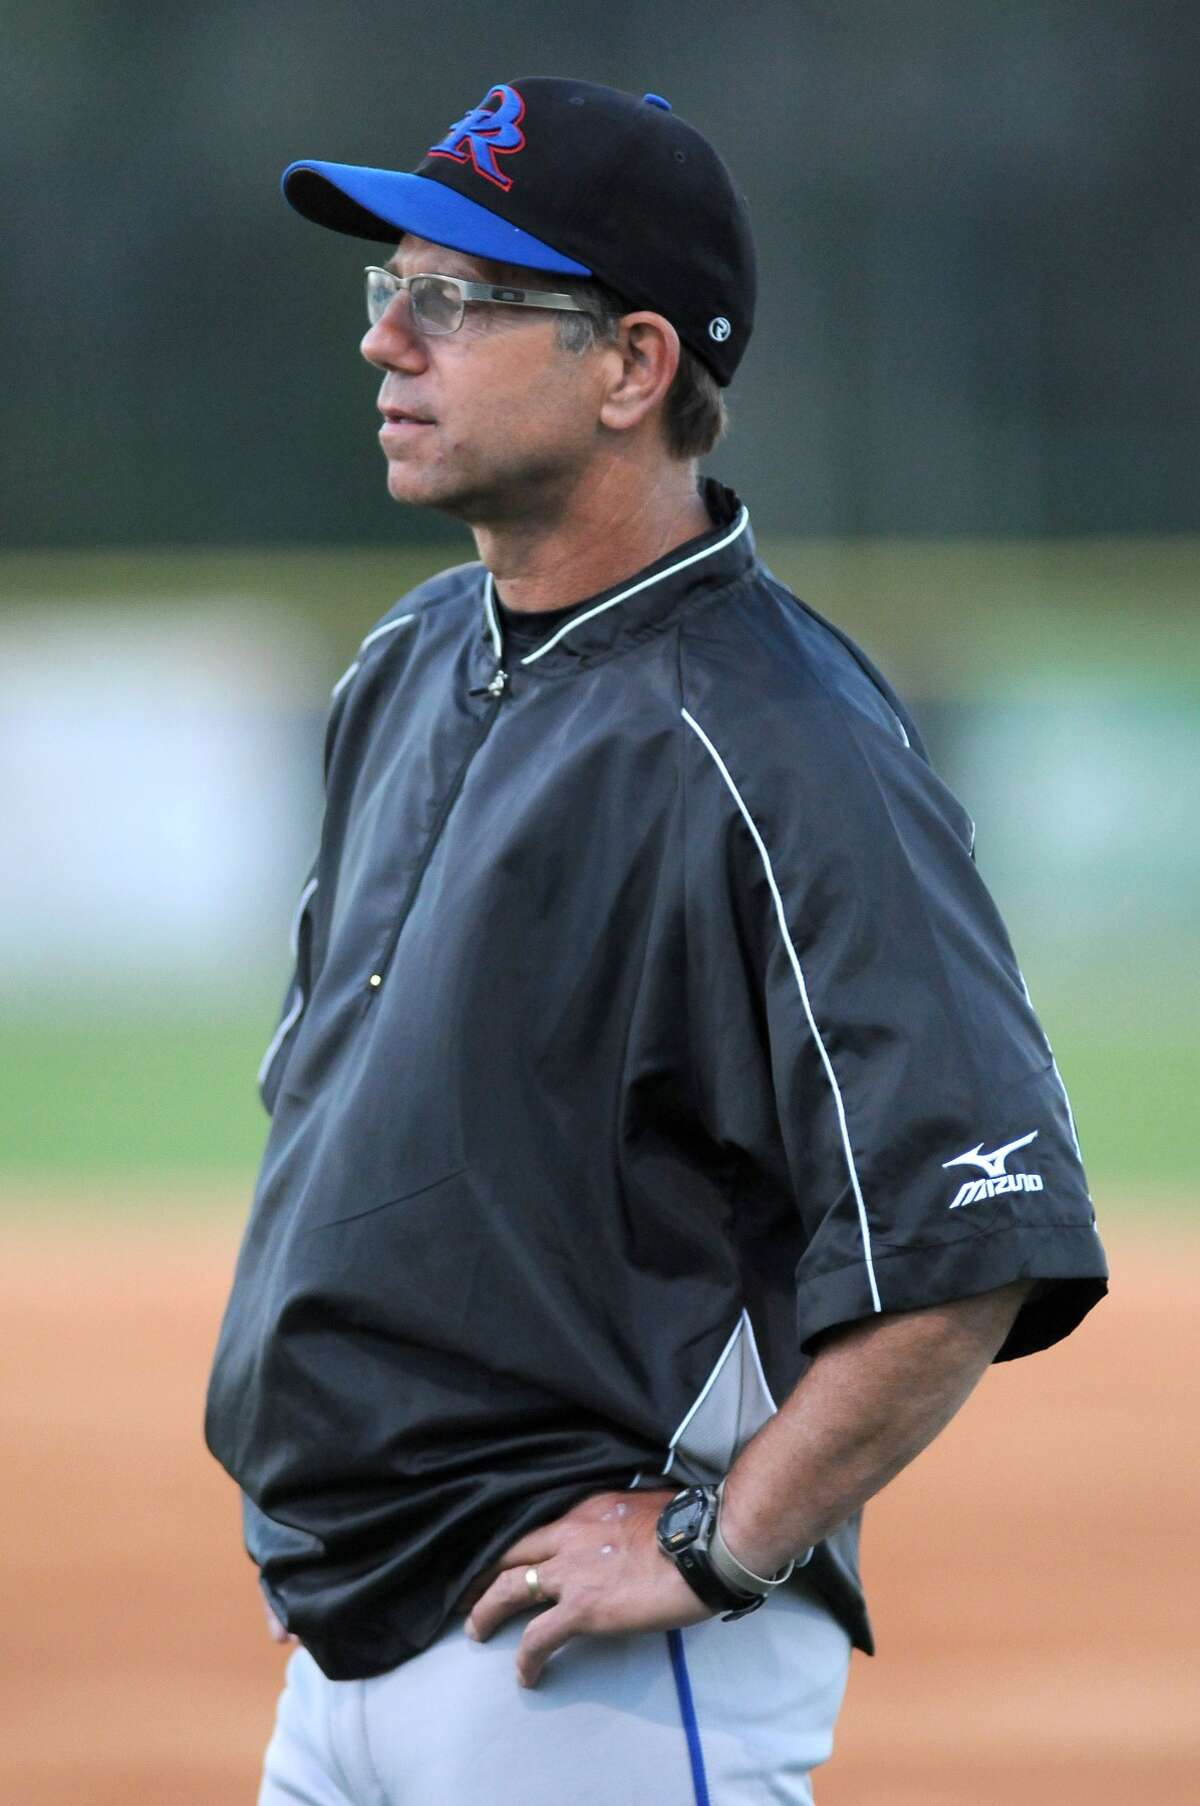 Oak Ridge baseball coach Mike Pirtle has a solid set of returnees as well as players from a district-winning junior varsity squad set to compete for the league title again in 2017.